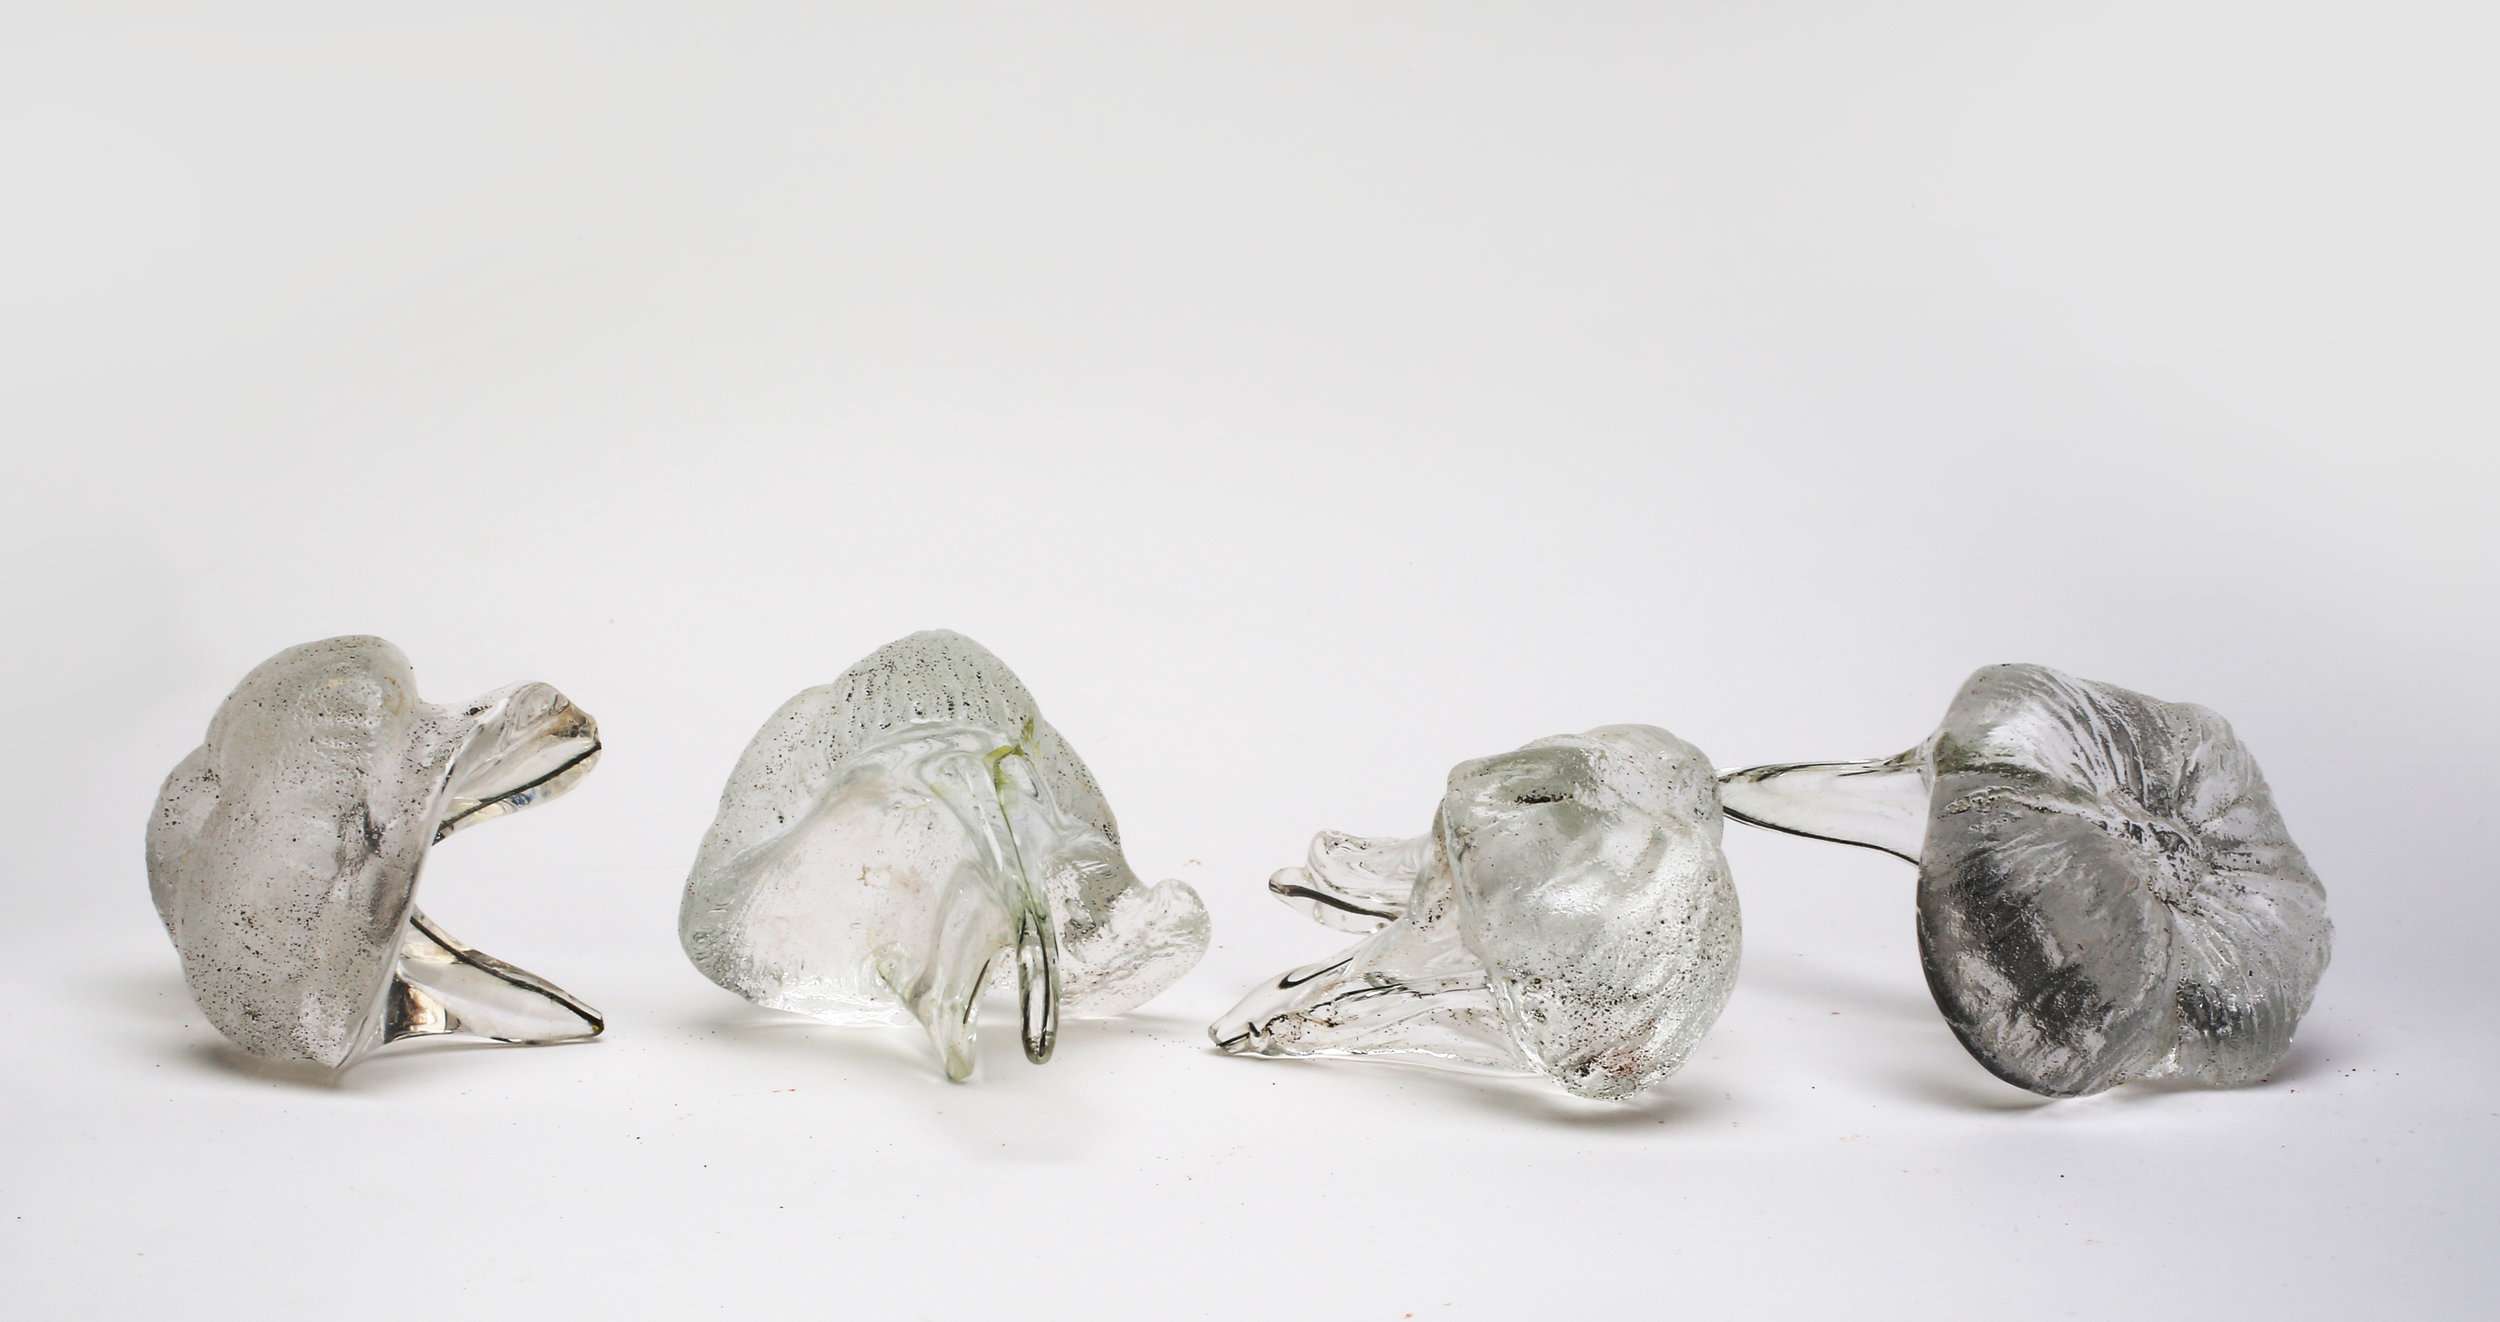 """Wisdom Teeth"" (2017), Anina Major, glass, 3 x 5 x 3 (4). Collection of the artist. Cast from dried coconut husks in sand."